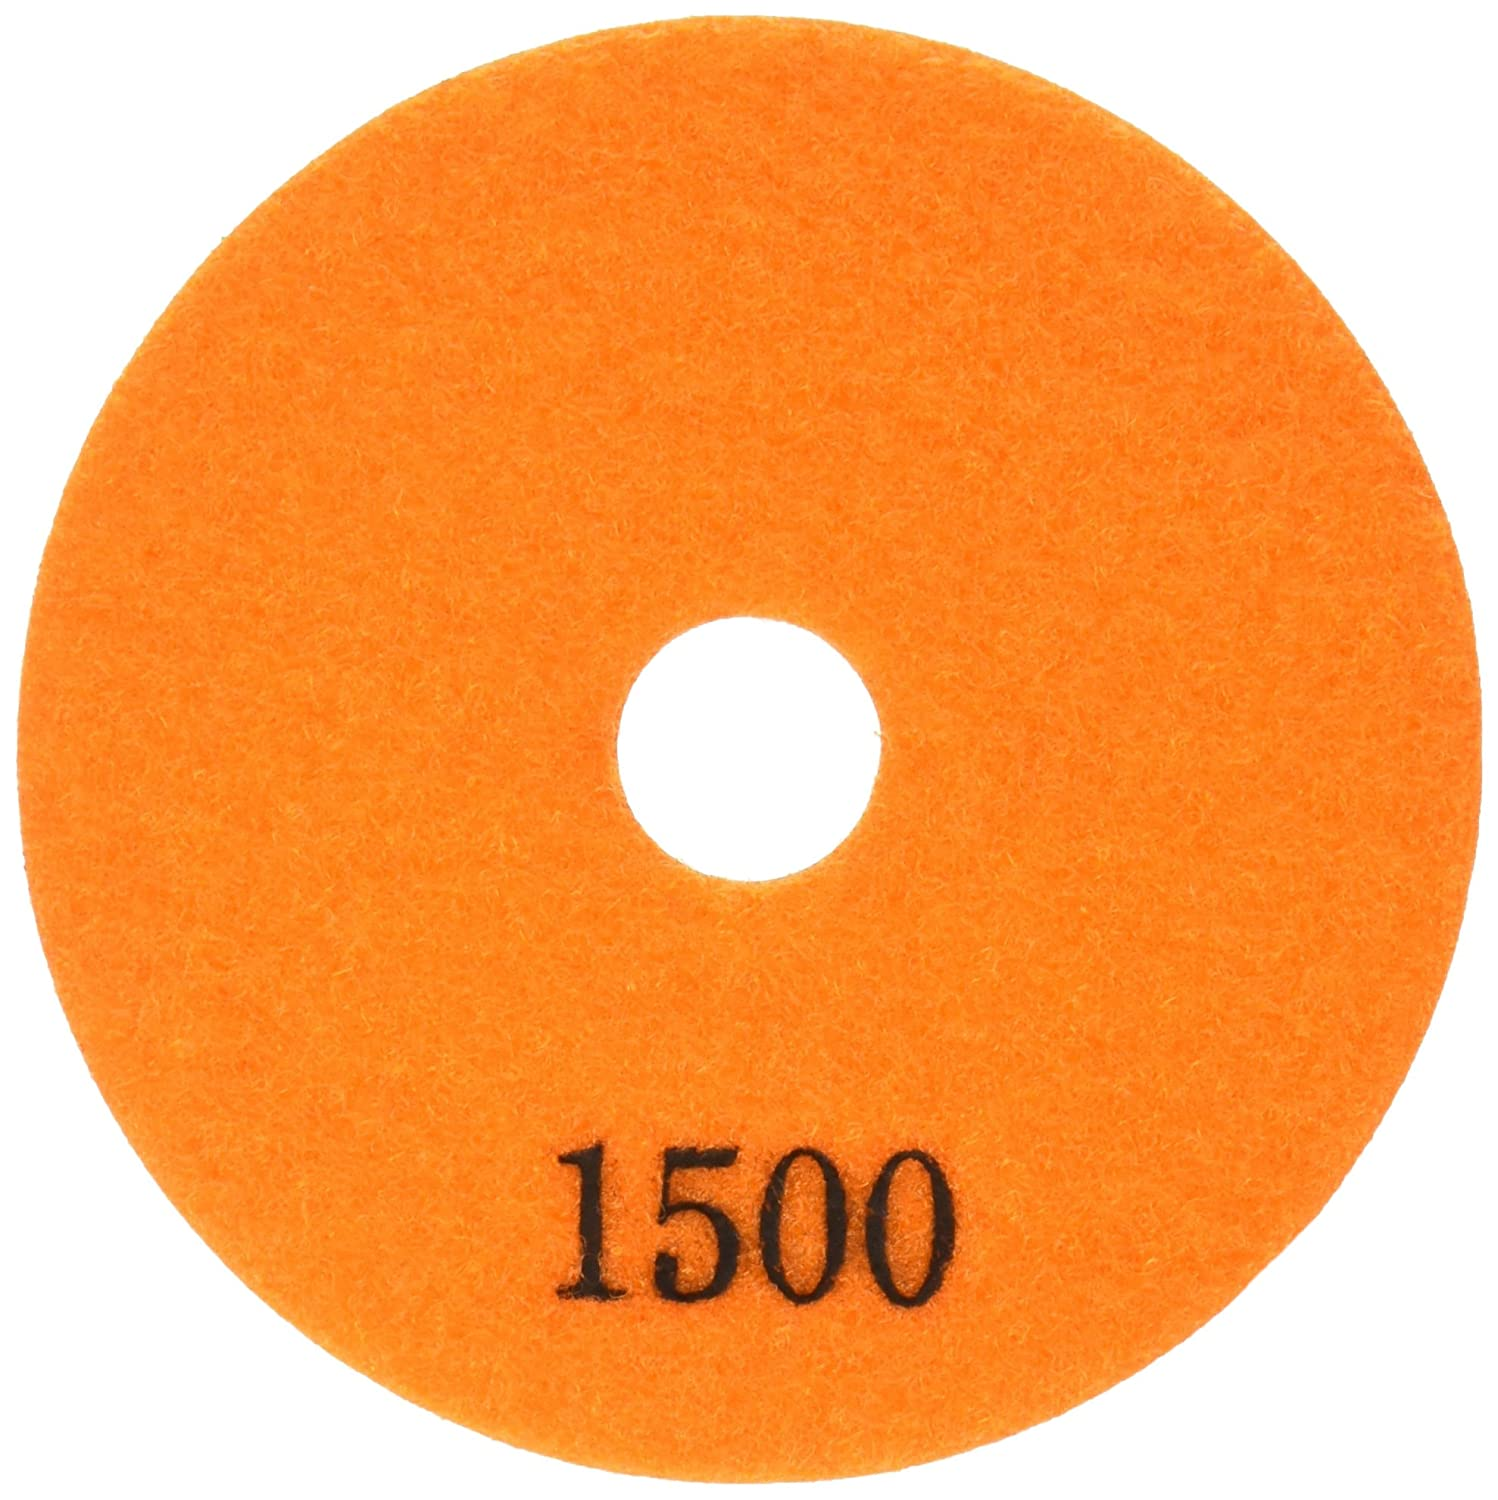 MK Diamond 159065 1500 Grit Flexible Dry Polishing Disc 4